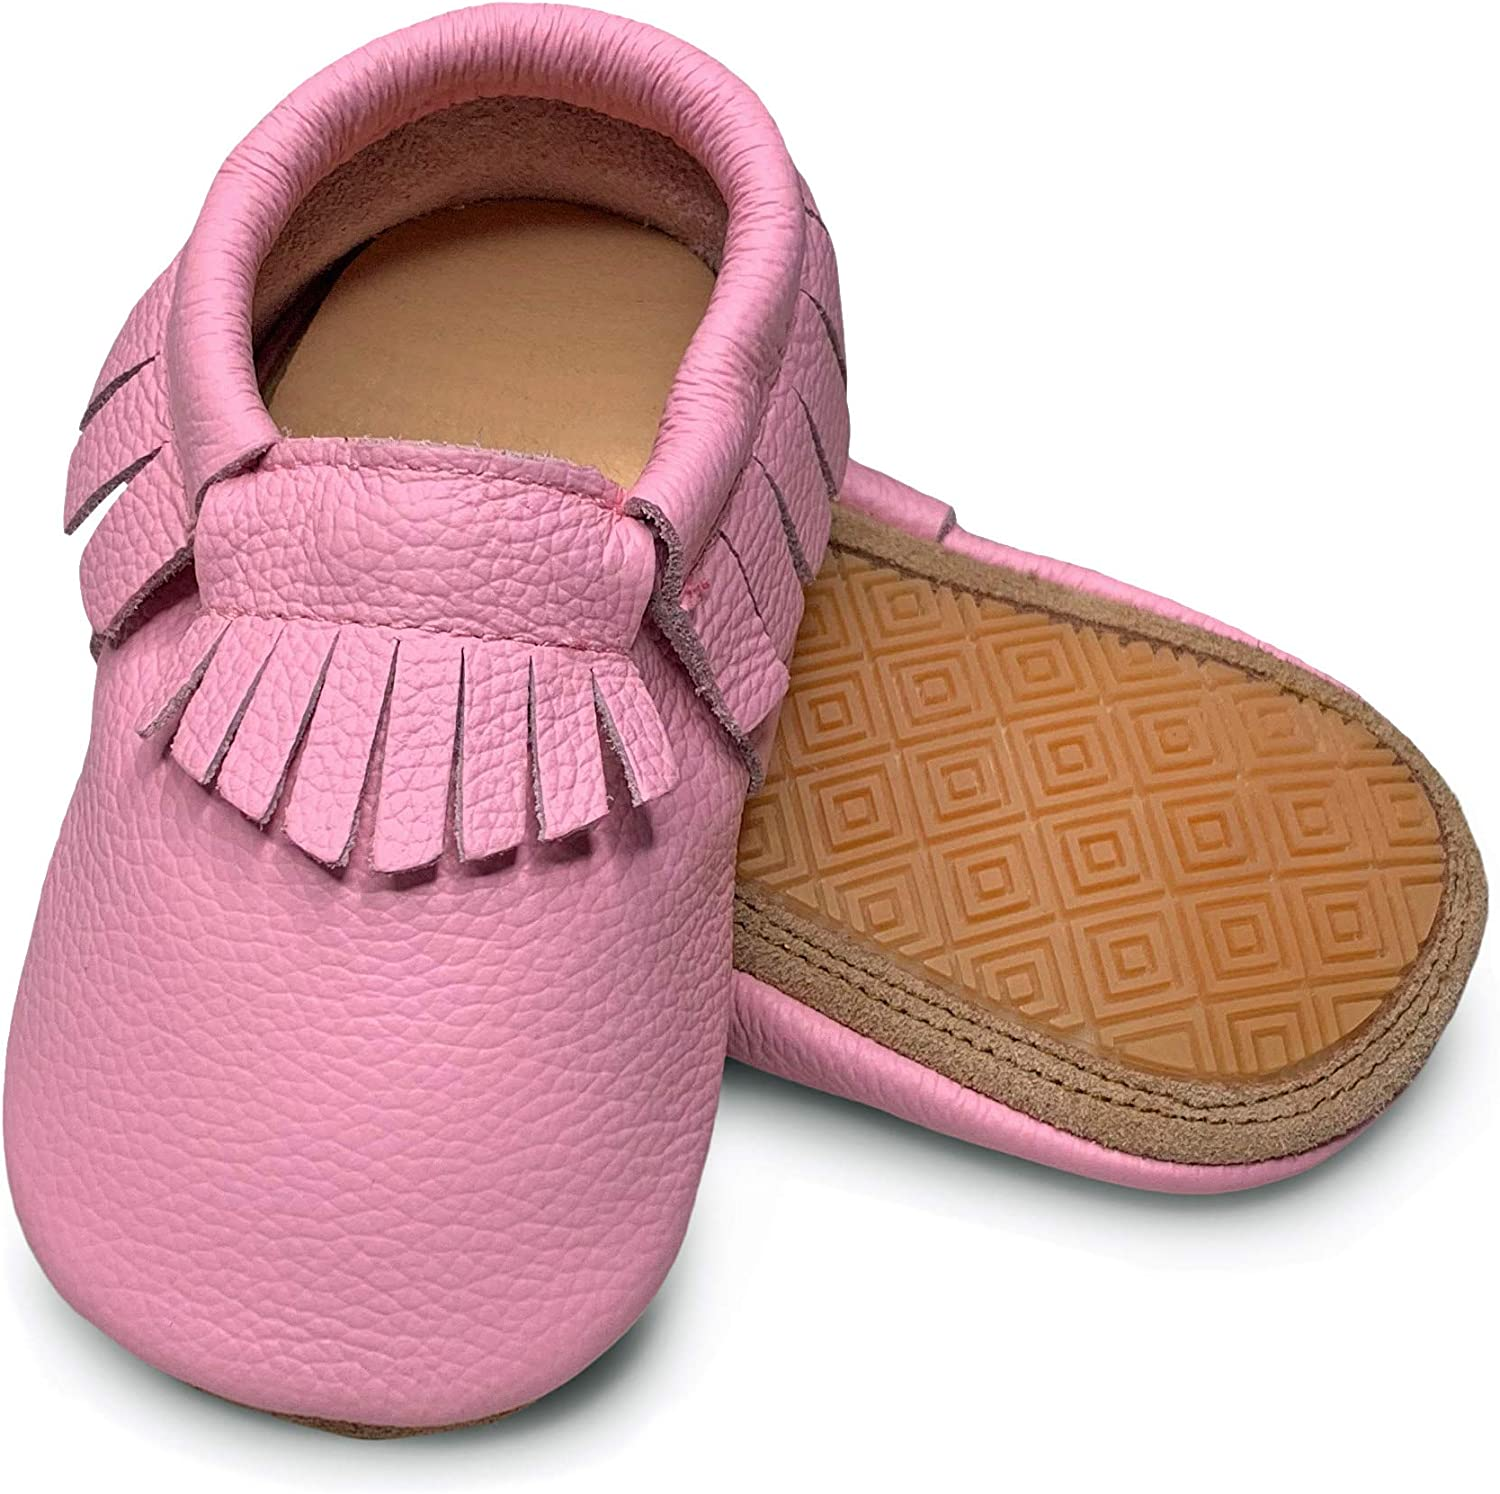 Lucky Love Toddler Moccasins • Premium Leather • Infant, Baby & Toddler Shoes for Girls and Boys